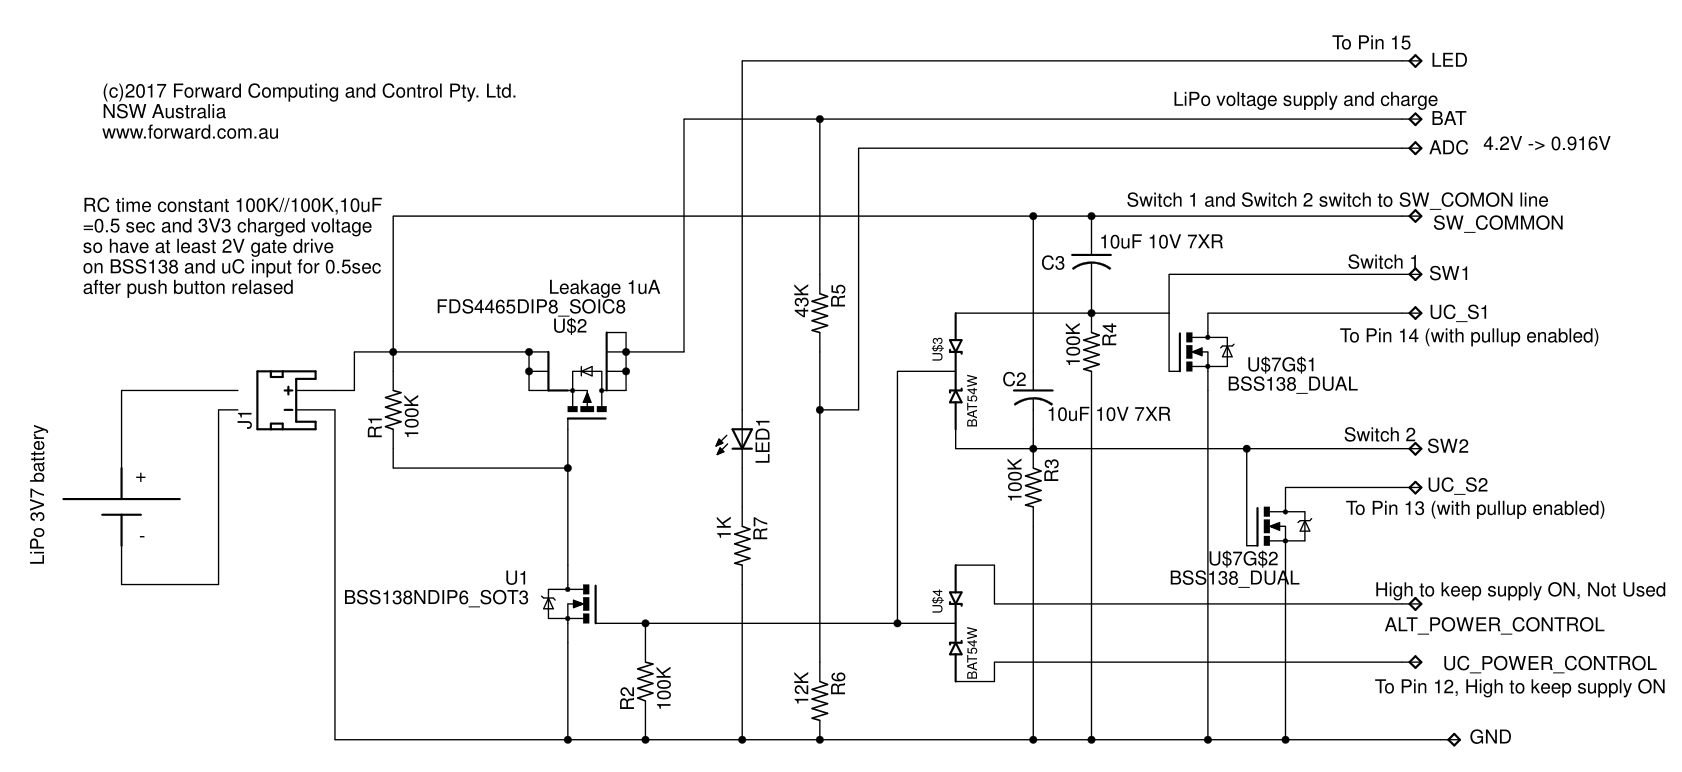 Long Life On/Off Remote WiFi, Bluetooth, BLE, Radio/LoRa or SMS